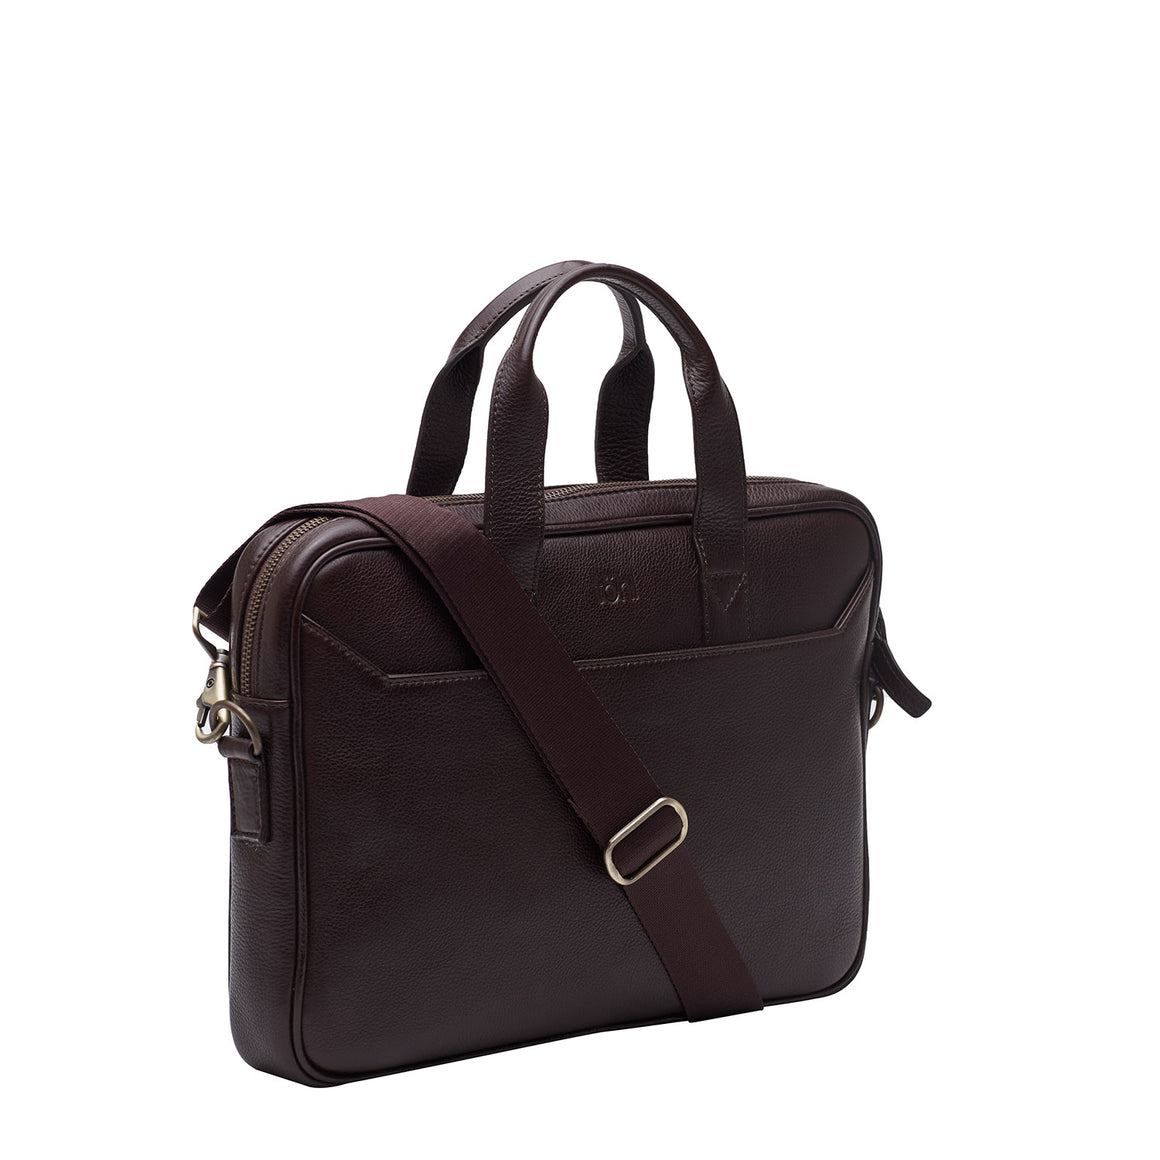 LB 0001 - TOHL VETTORE MEN'S LAPTOP BAG - T MORO